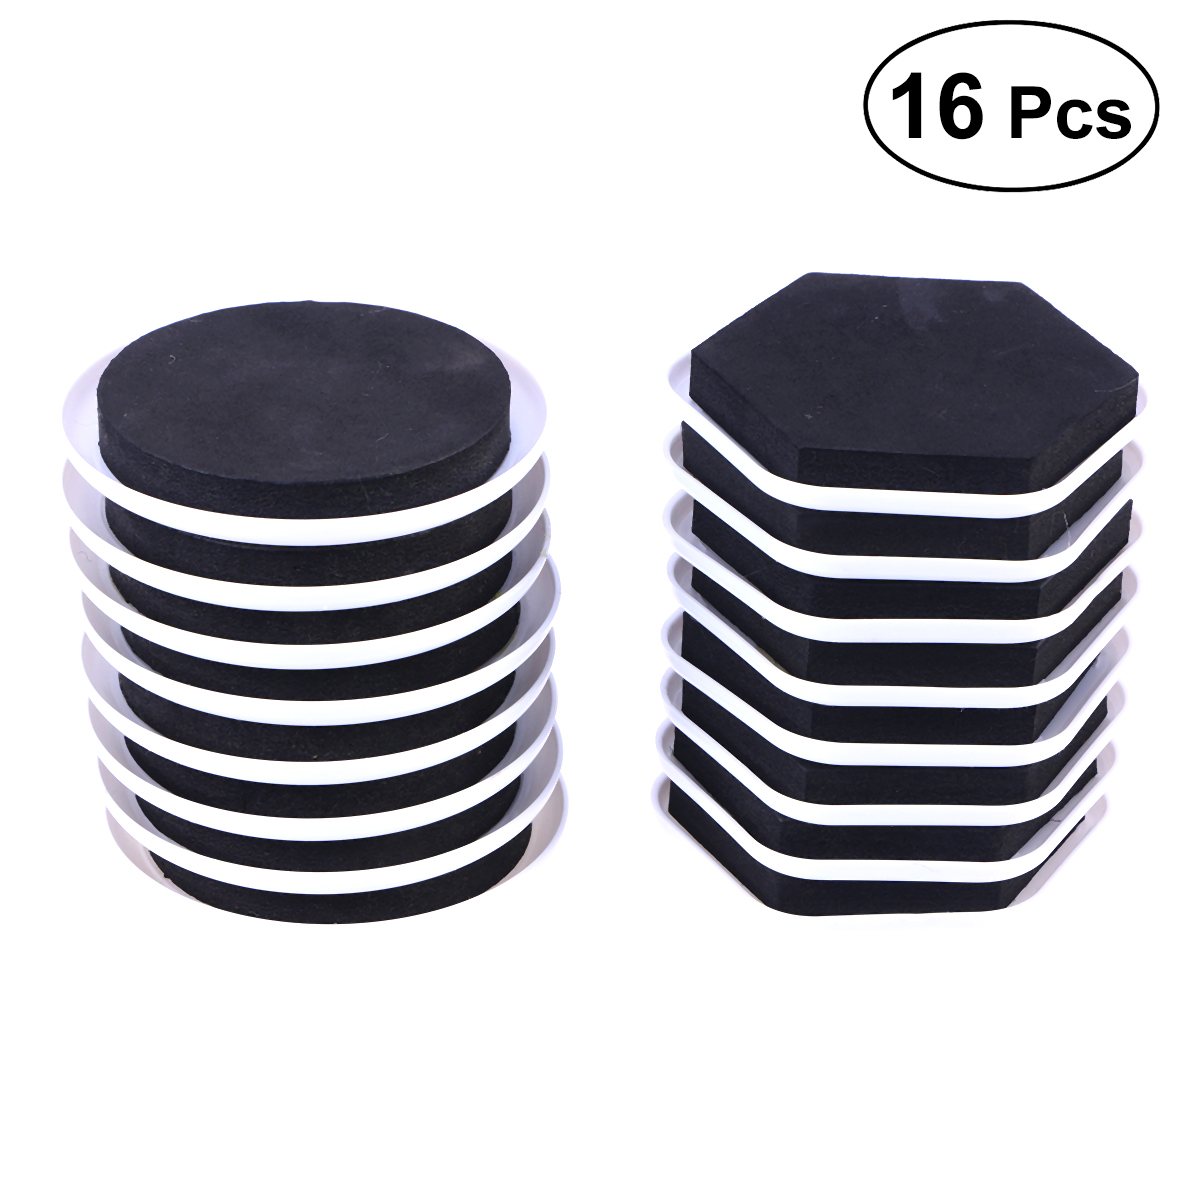 16 Pcs Furniture Sliders Tough Efficient Furniture Movers For Moving Heavy Furnitures Sundries